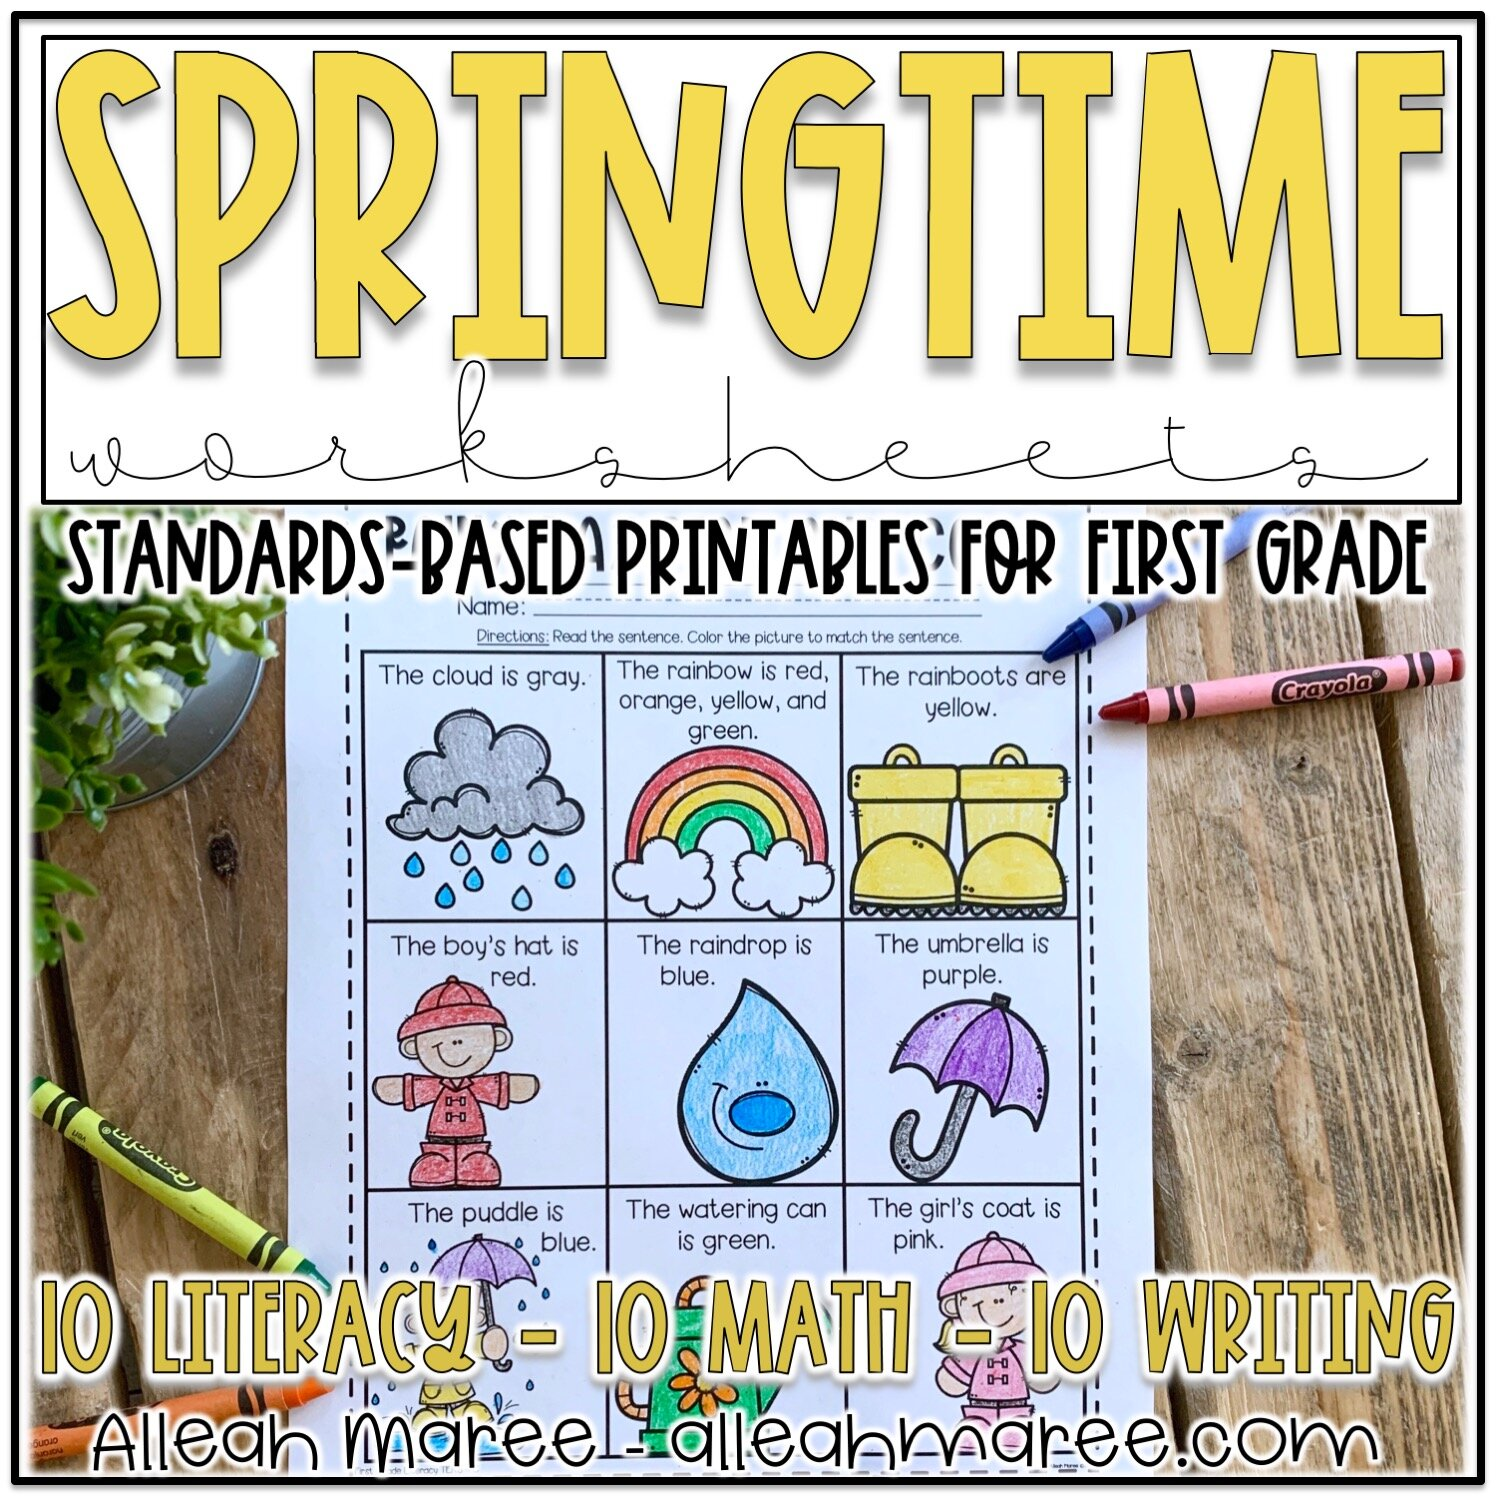 Springtime Worksheets for First Grade: Spring Literacy and Math Printables  — Alleah Maree [ 1499 x 1499 Pixel ]